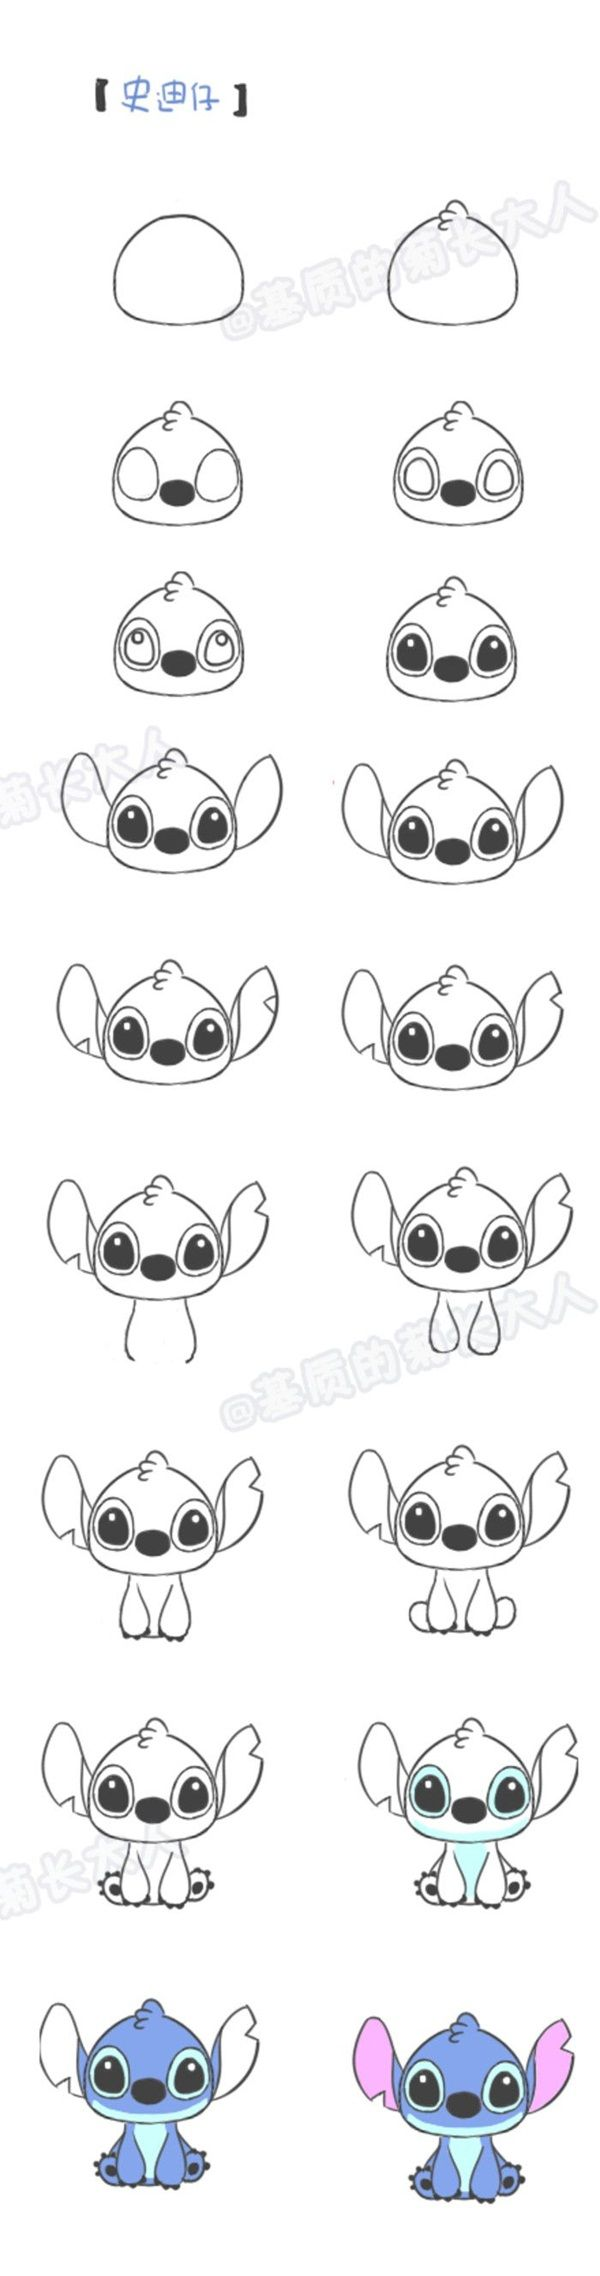 How To Draw Cartoon Characters Step By Step 30 Examples With